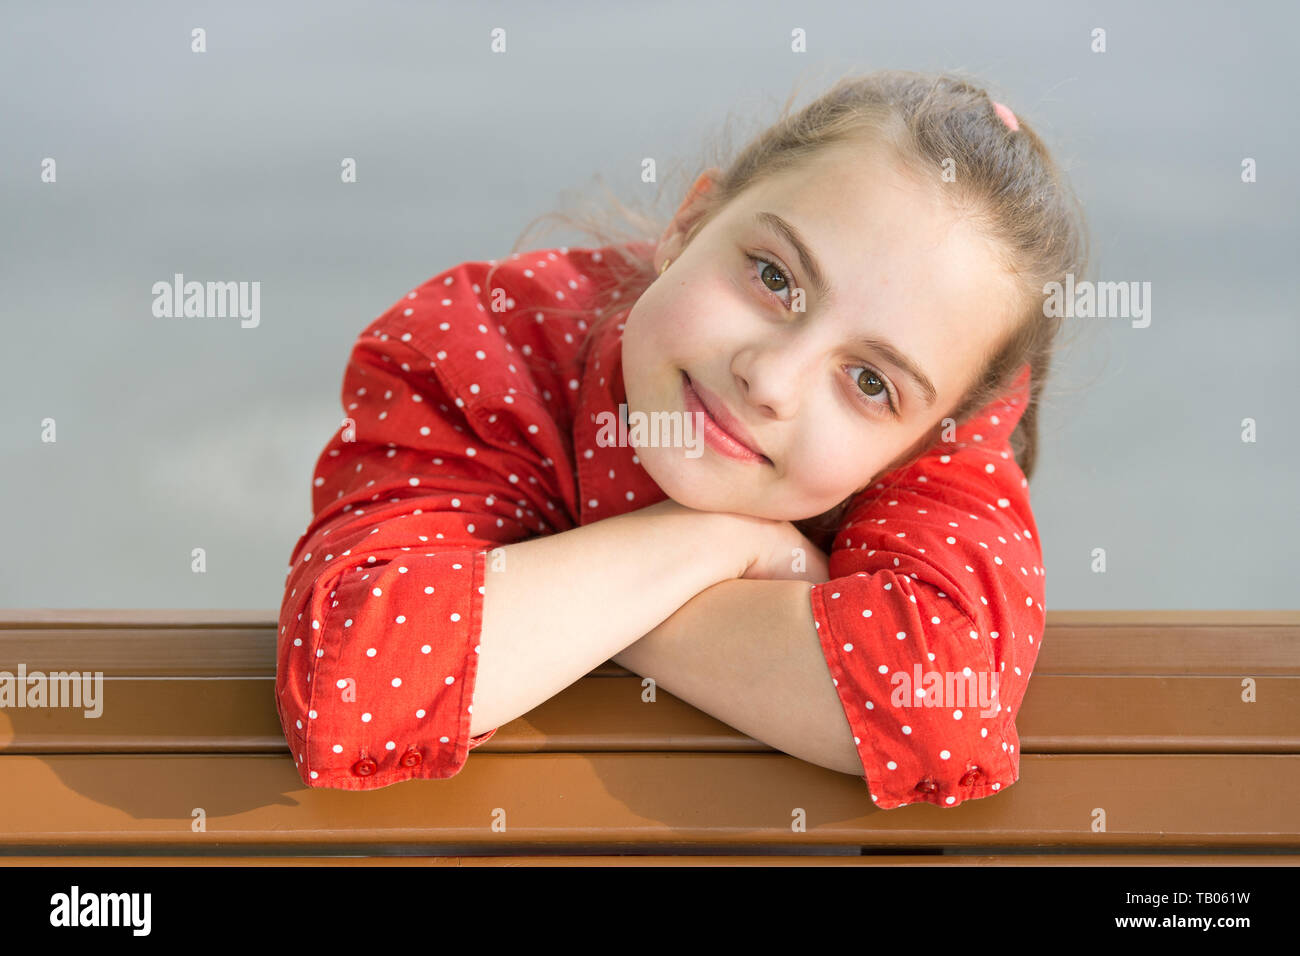 Bringing beauty outside with skincare. Beauty look of little skincare model. Adorable small girl with healthy young face skin. Childrens skincare products and cosmetics. Skincare concept. - Stock Image